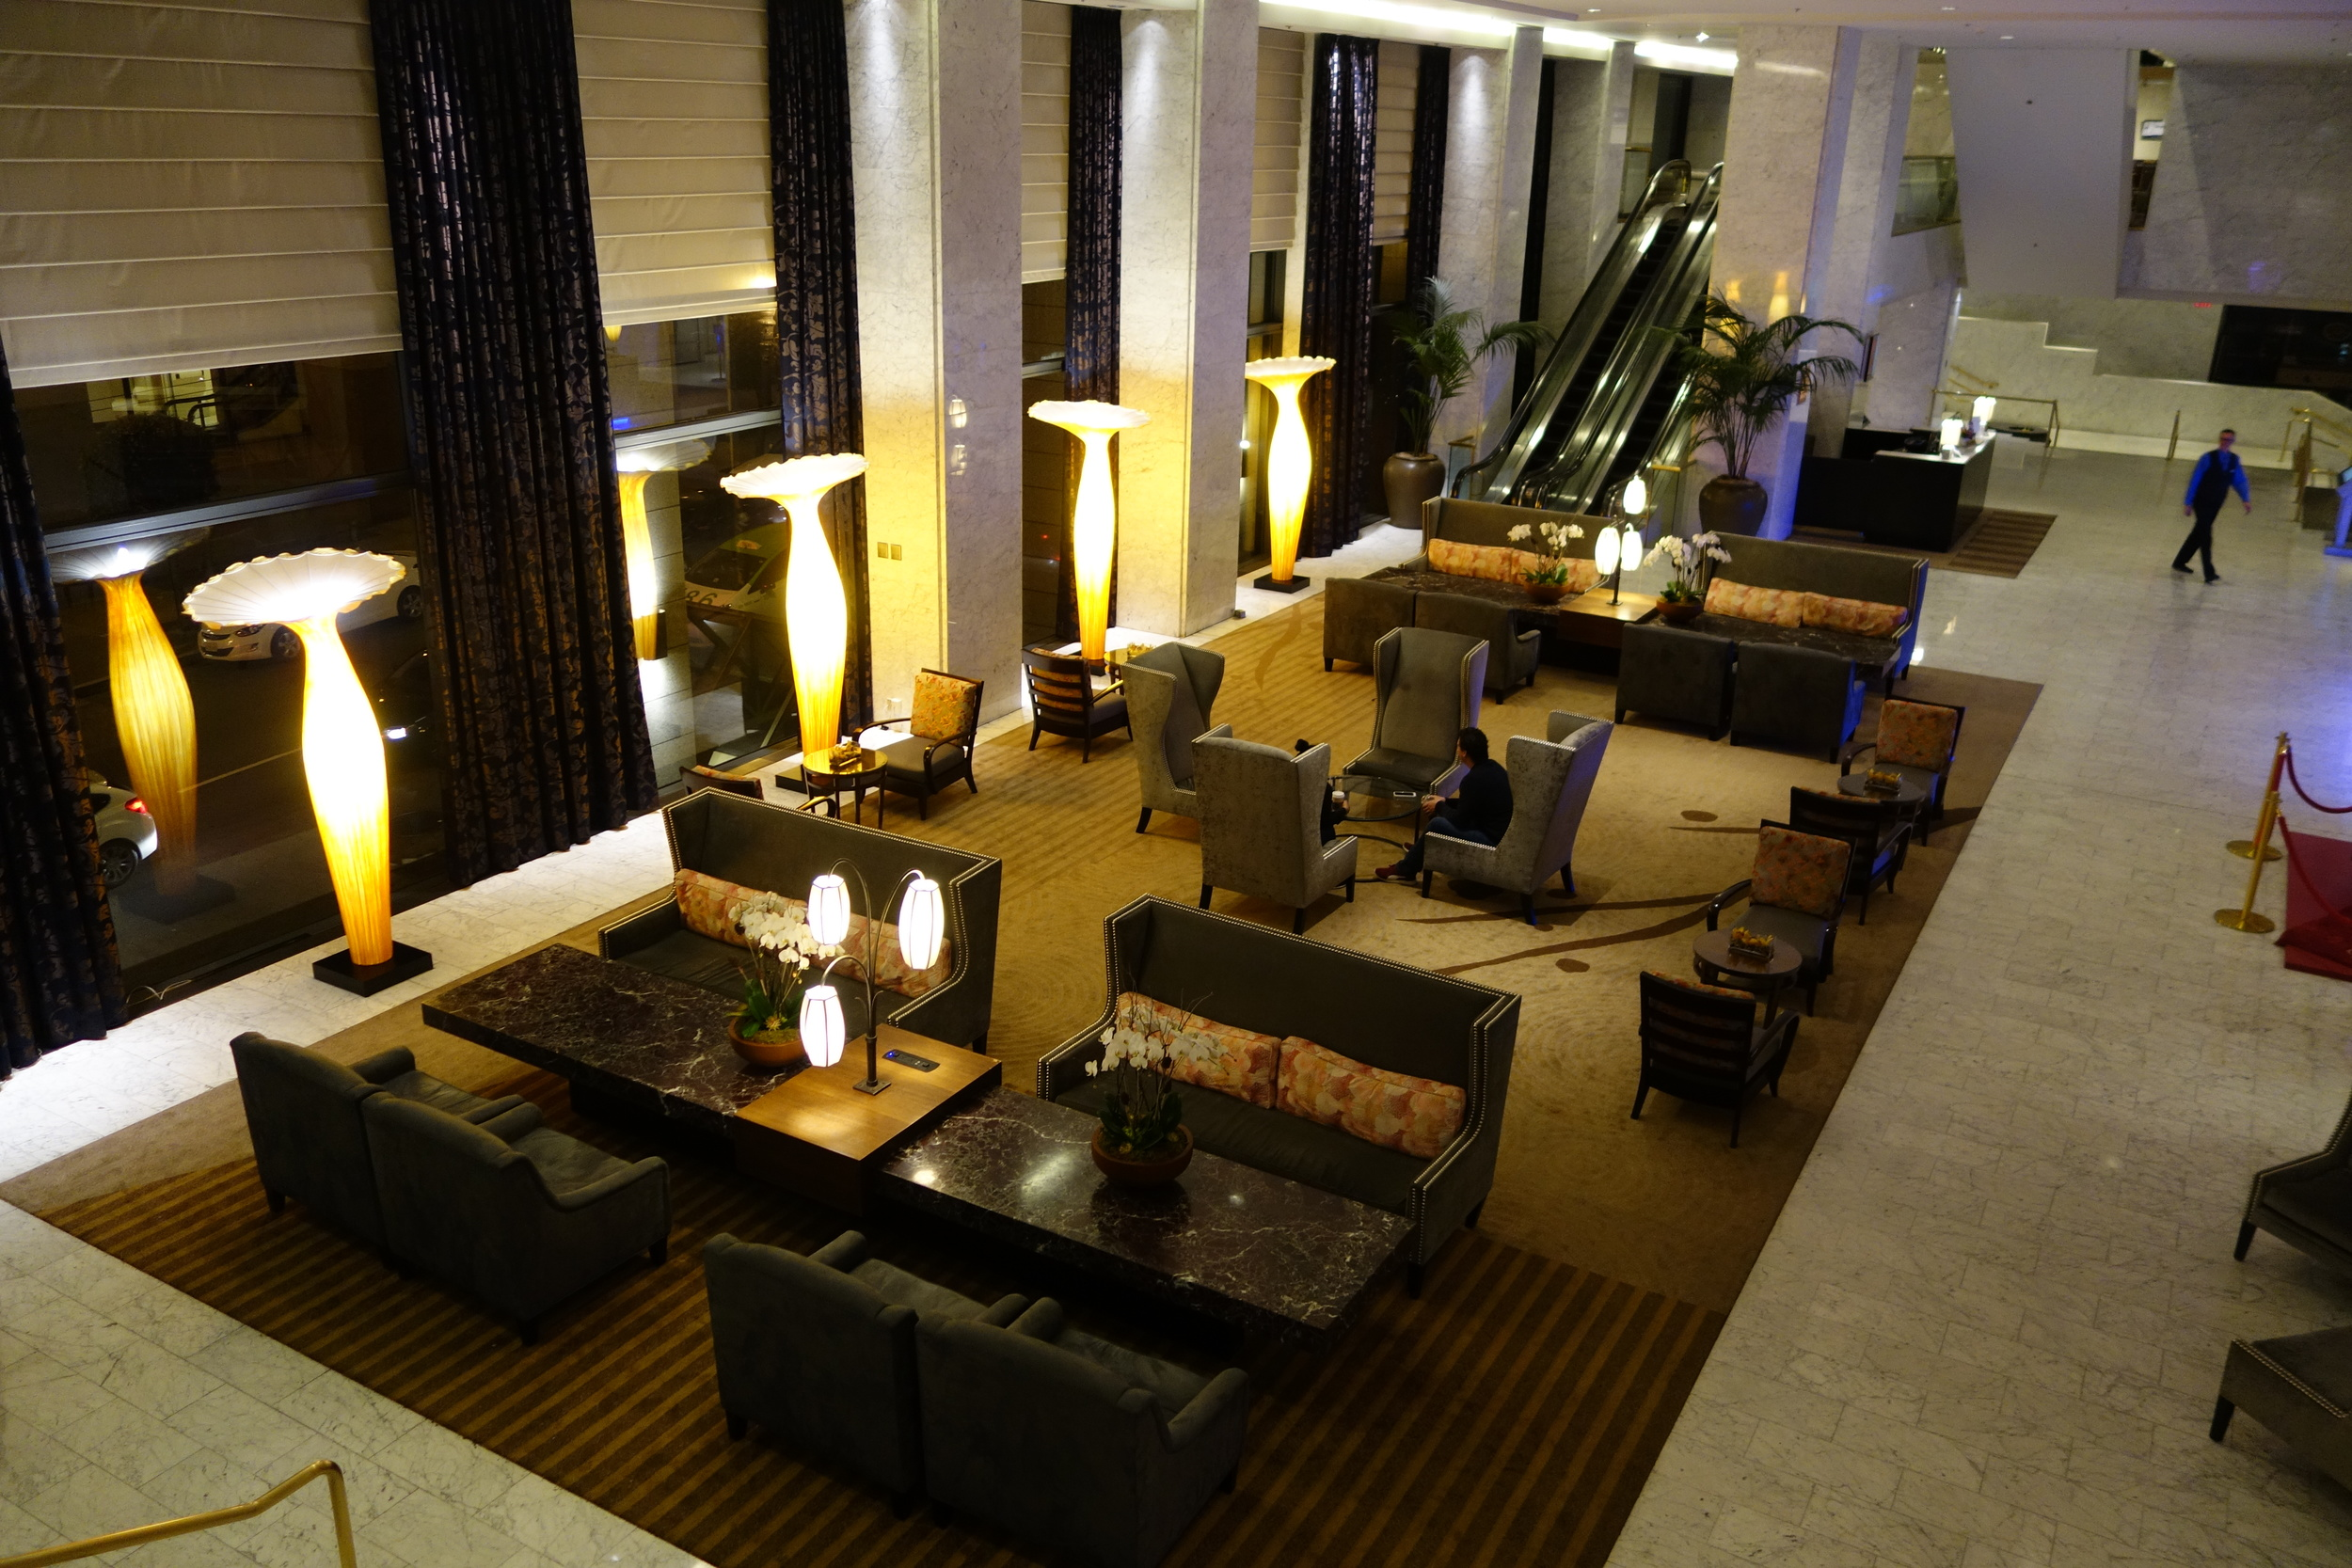 One of the lobbies inside Hotel Nikko, home of Anzu Restaurant and Bar.